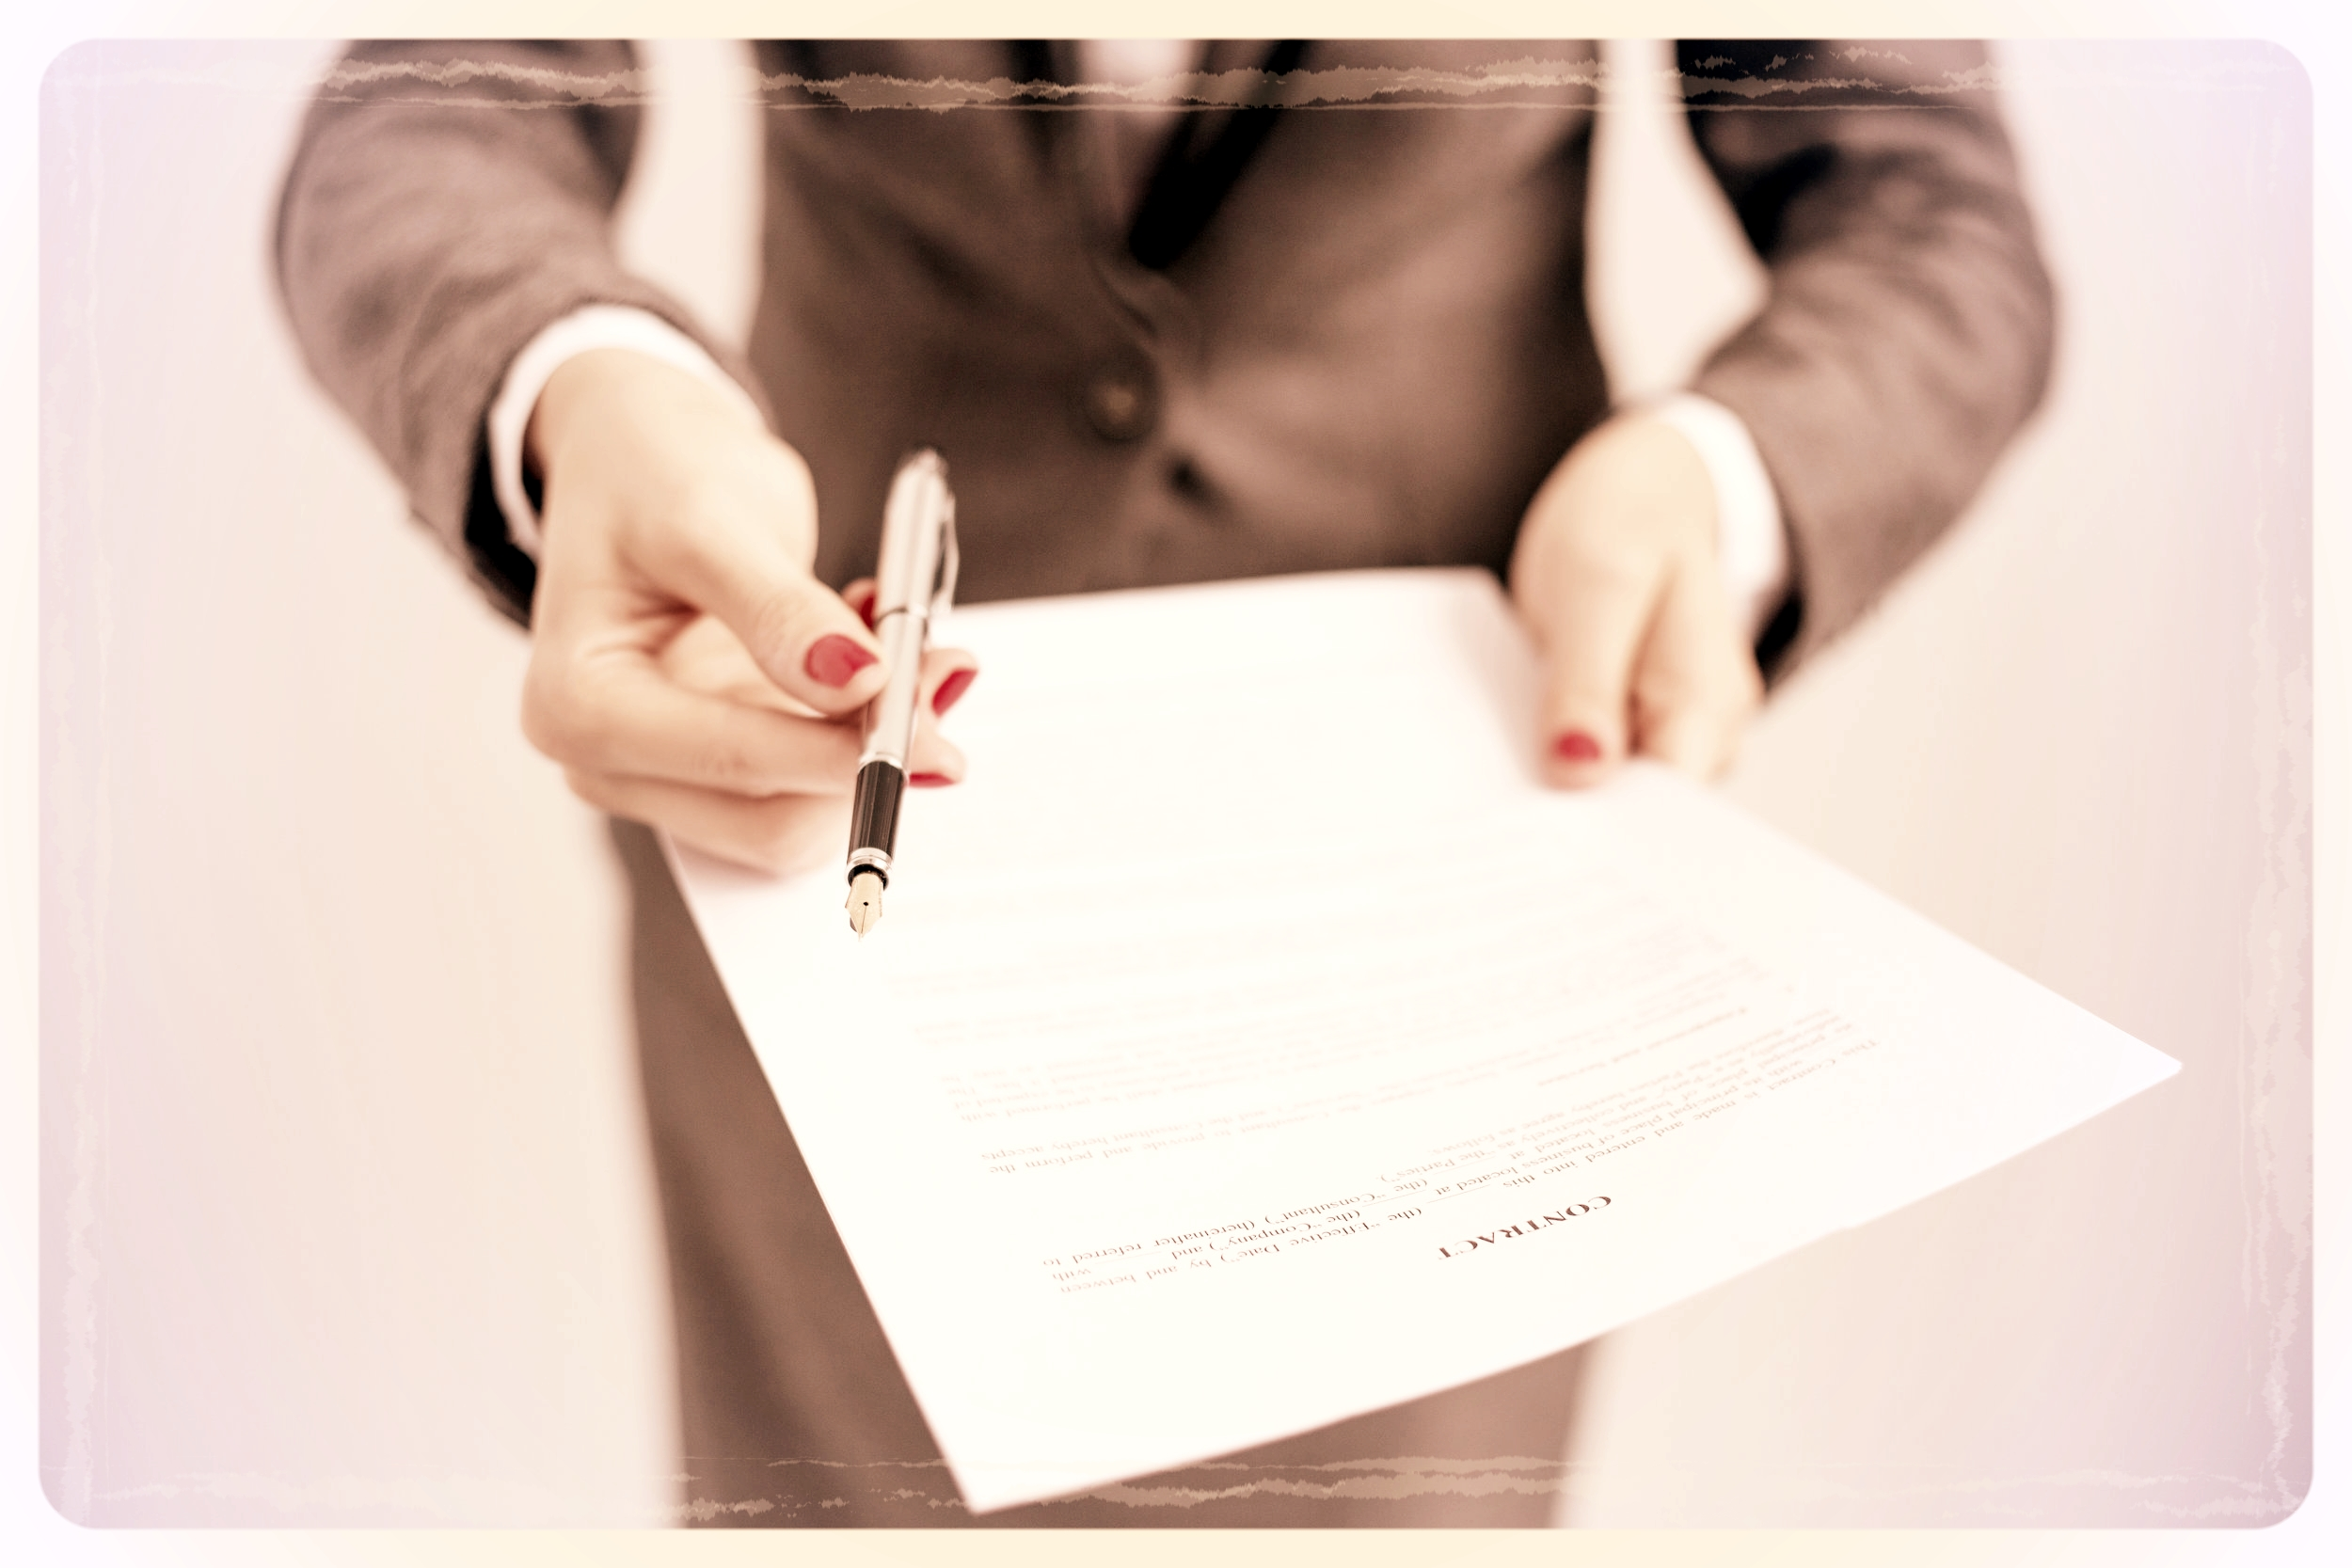 In sepia tones, a woman in a business suit hands a contract to the camera. She holds a fancy fountain pen in her hand and offers it with the contract.